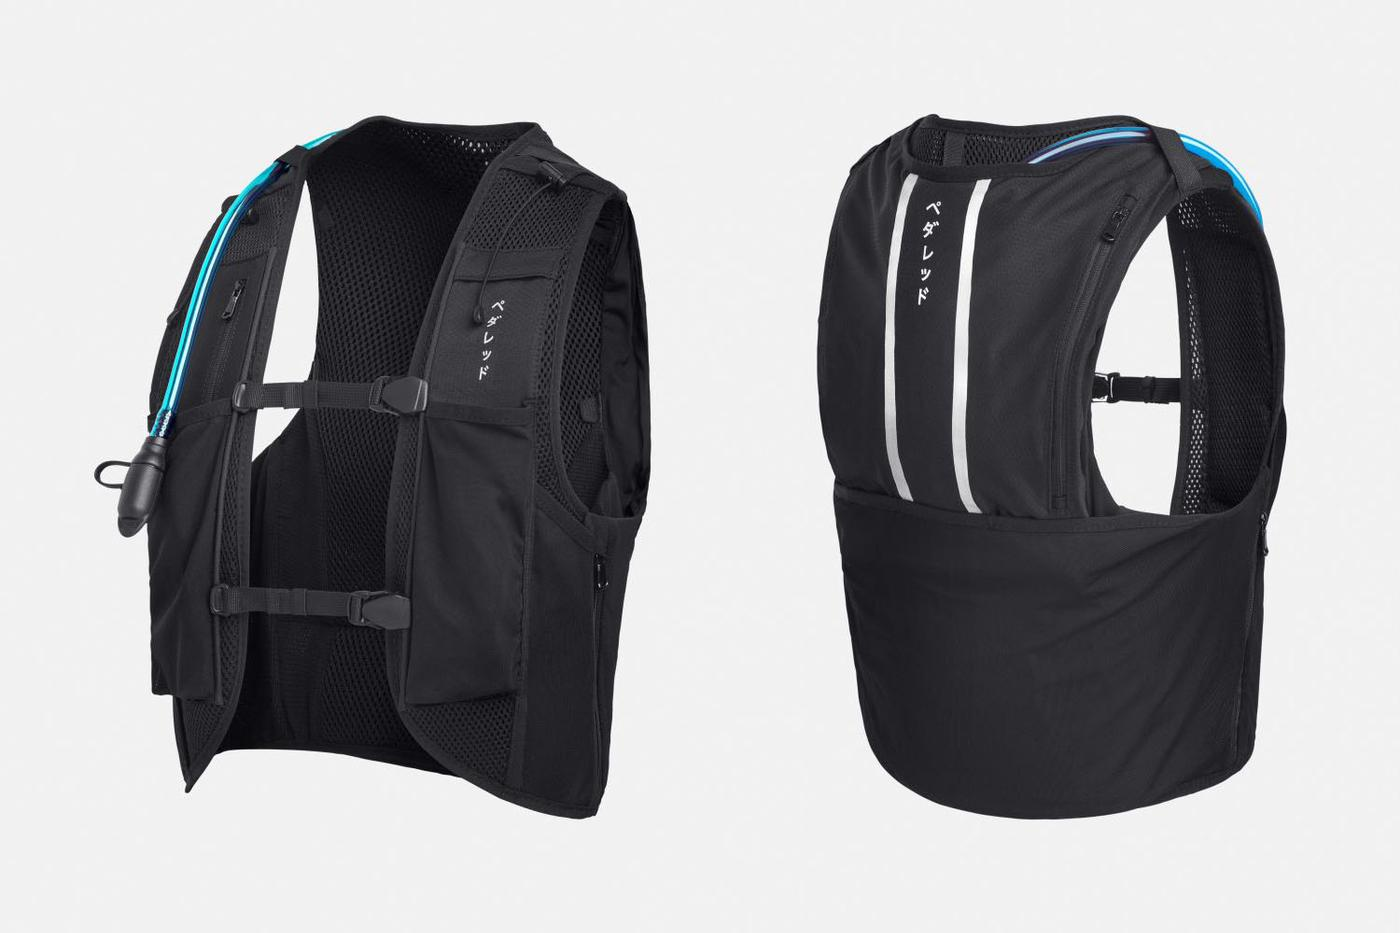 Want to Carry Water But Not a Full Backpack? Check out PeDALED's Odyssey Hydro Vest